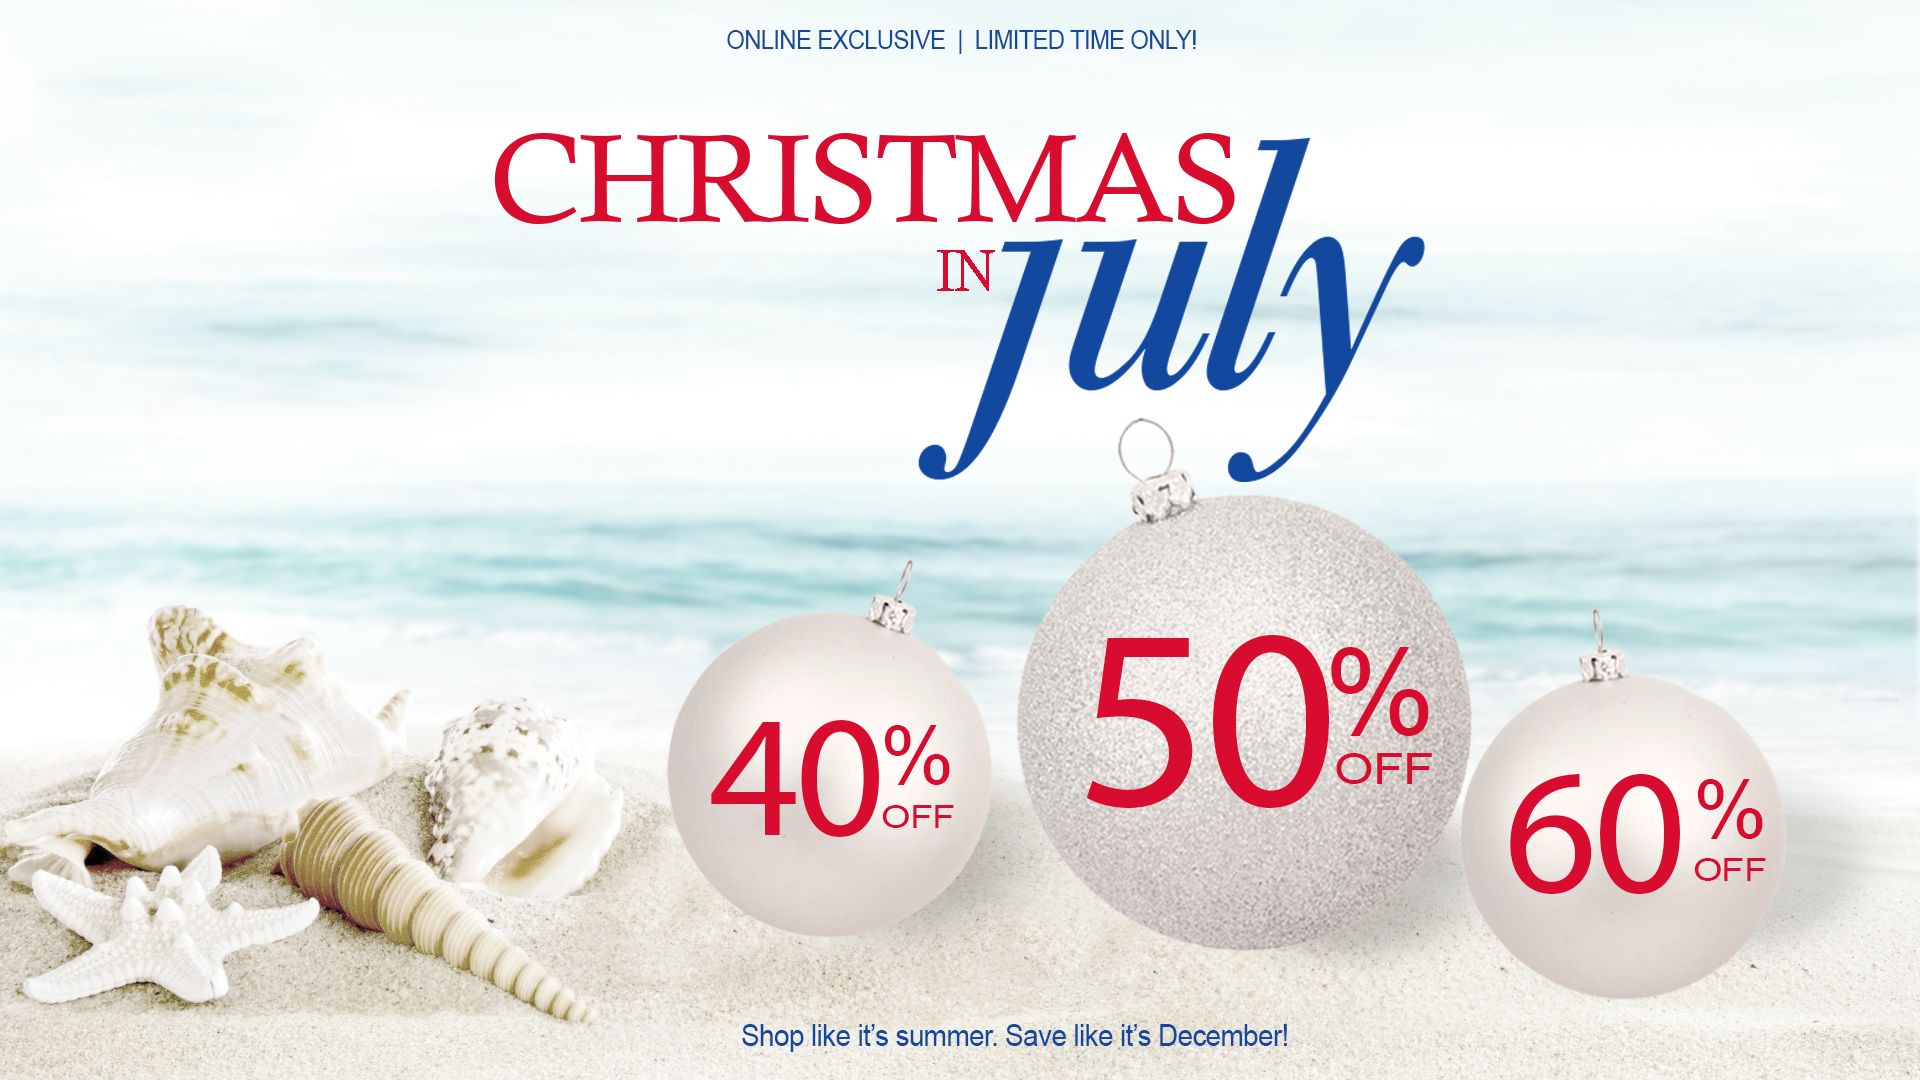 Christmas In July Sale Images.Christmas In July Sale American Fitness Couture